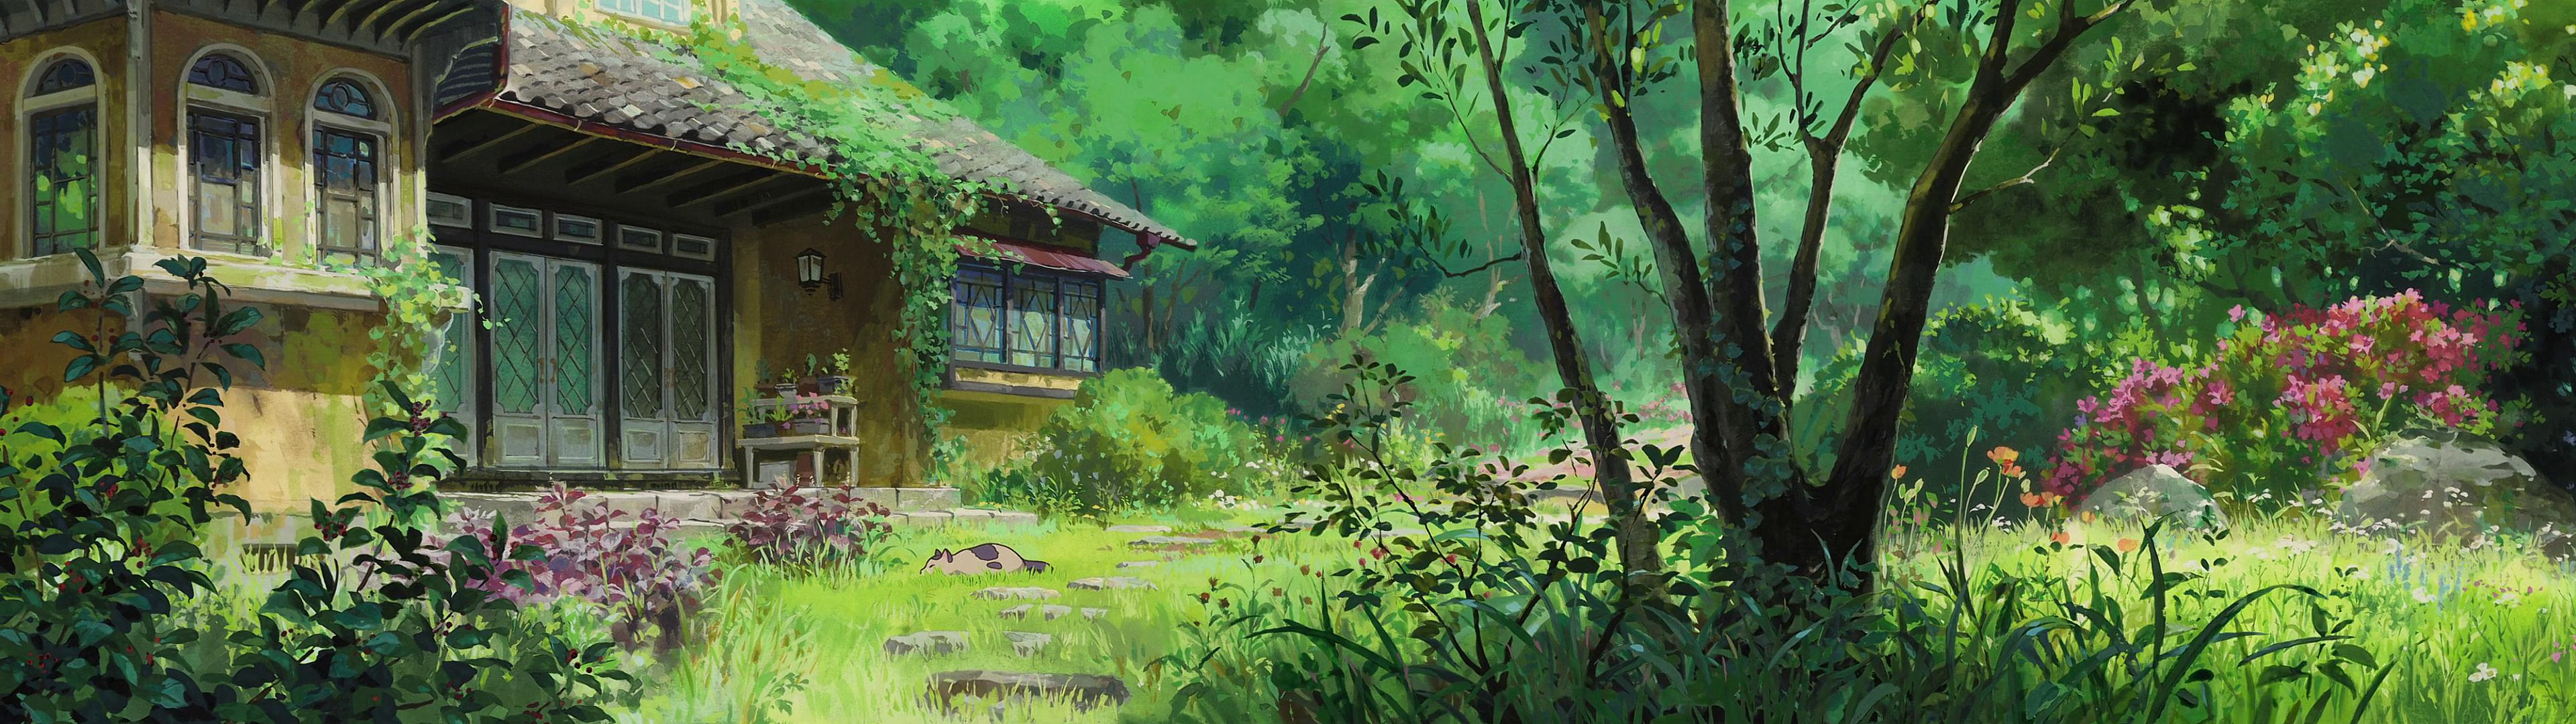 High res 39 dual screen 39 studio ghibli desktop wallpapers for The garden studio